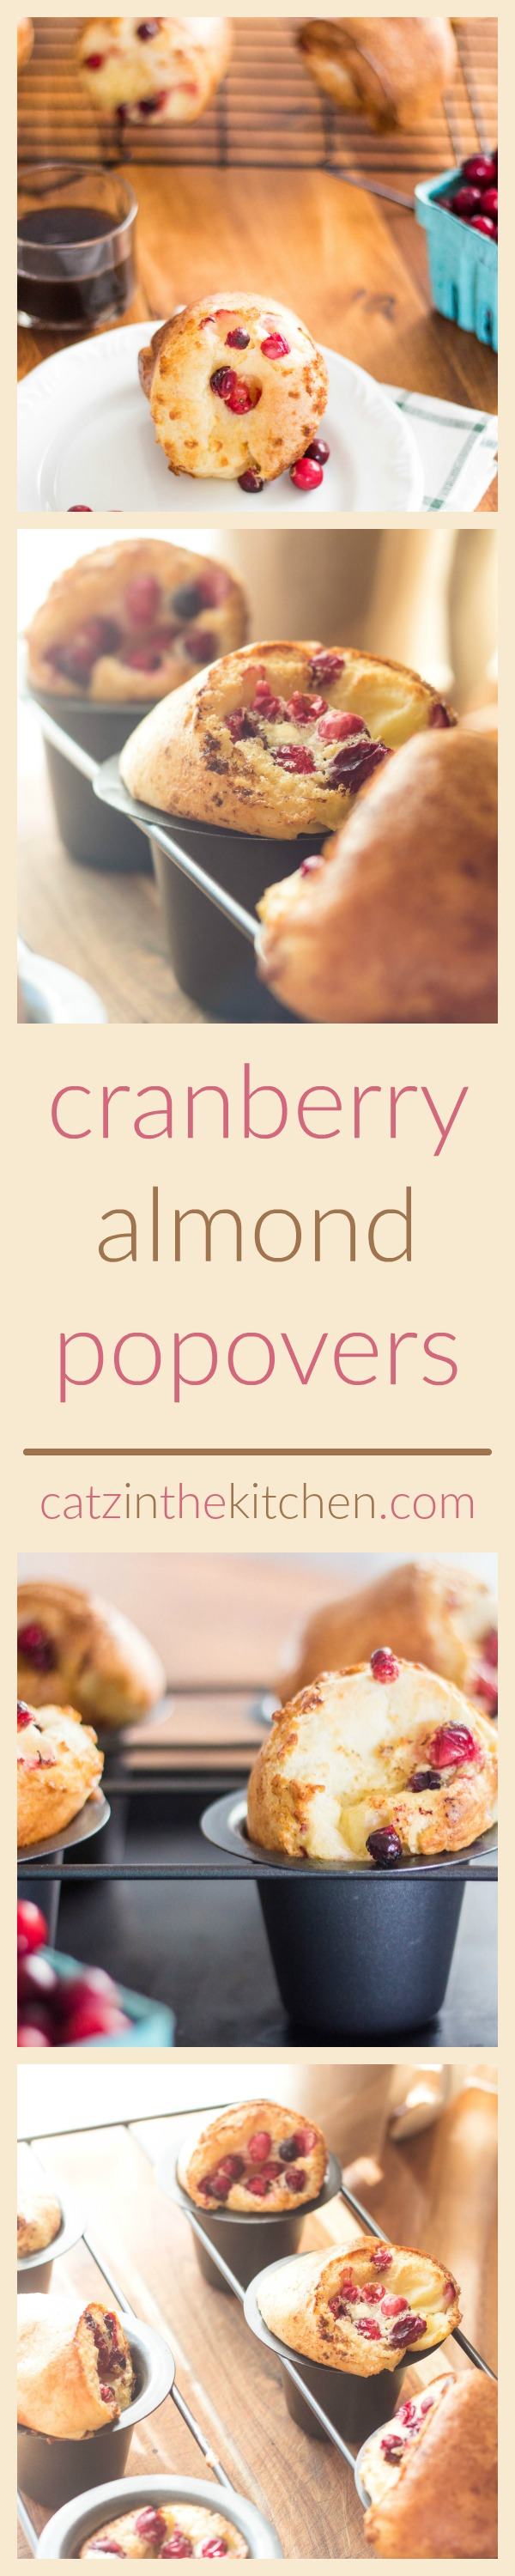 Cranberry Almond Popovers | Catz in the Kitchen | catzinthekitchen.com | #cranberry #almond #baking